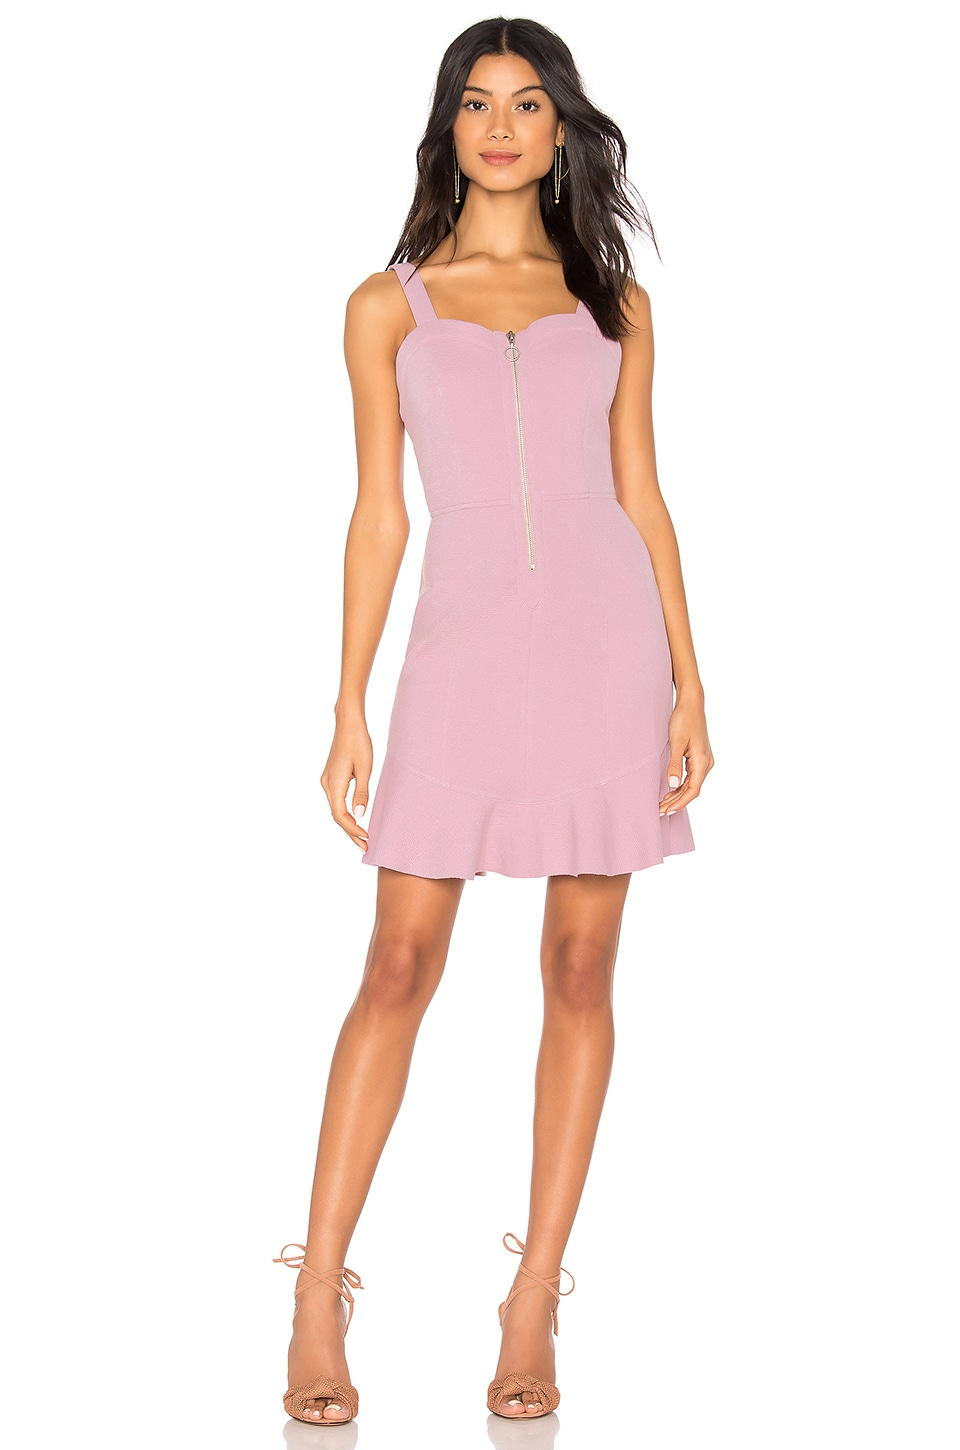 J.O.A. Zipper Front Dress in Lilac